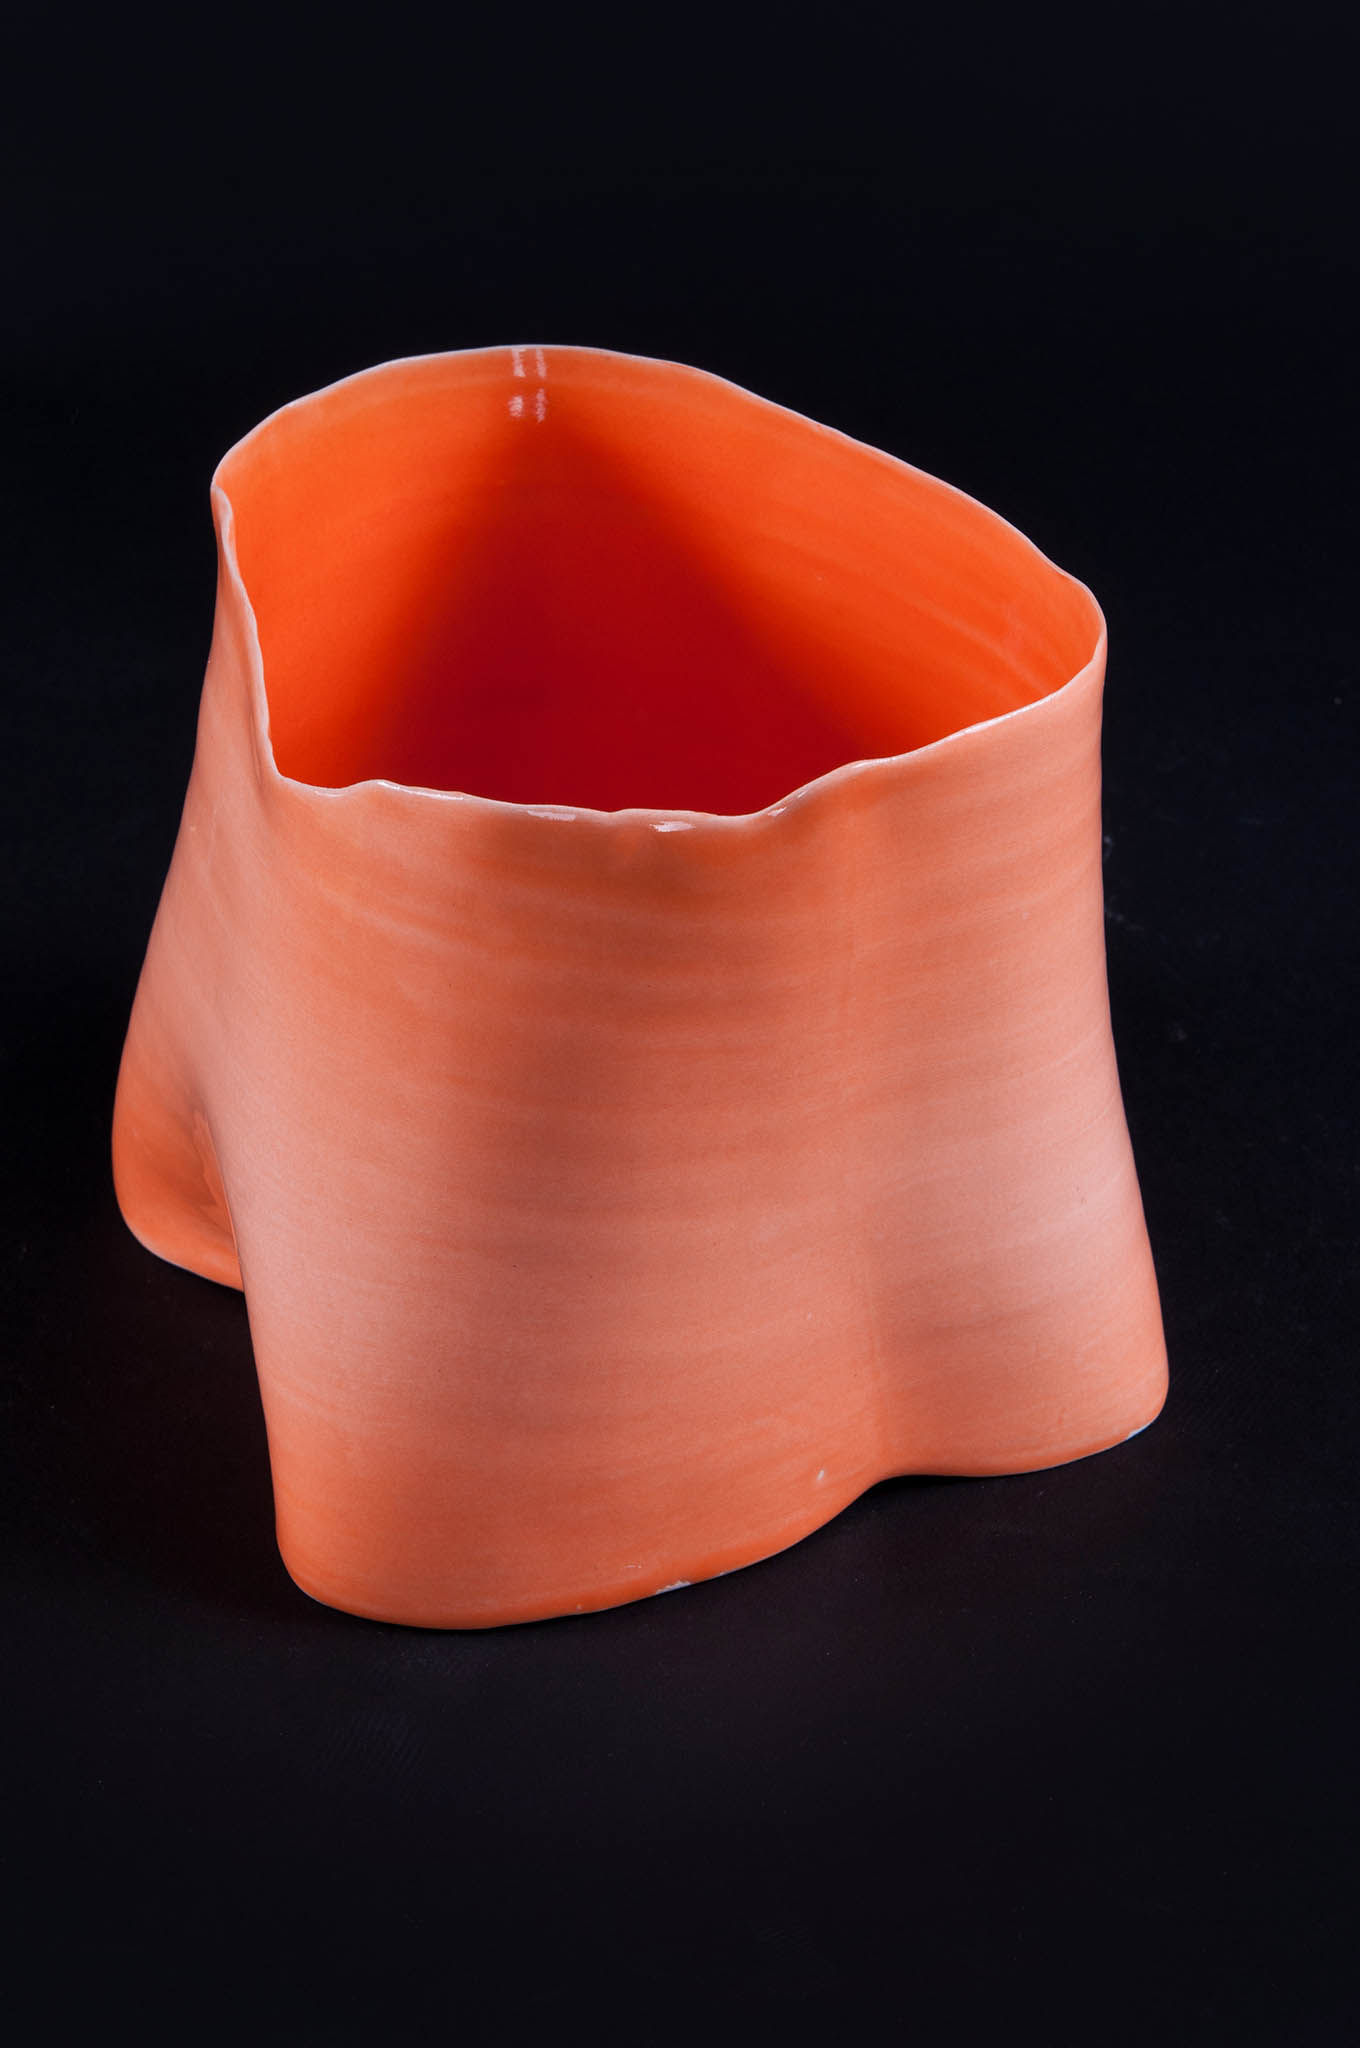 vases Nadine Spalter Auckland art reproduction professional photographer